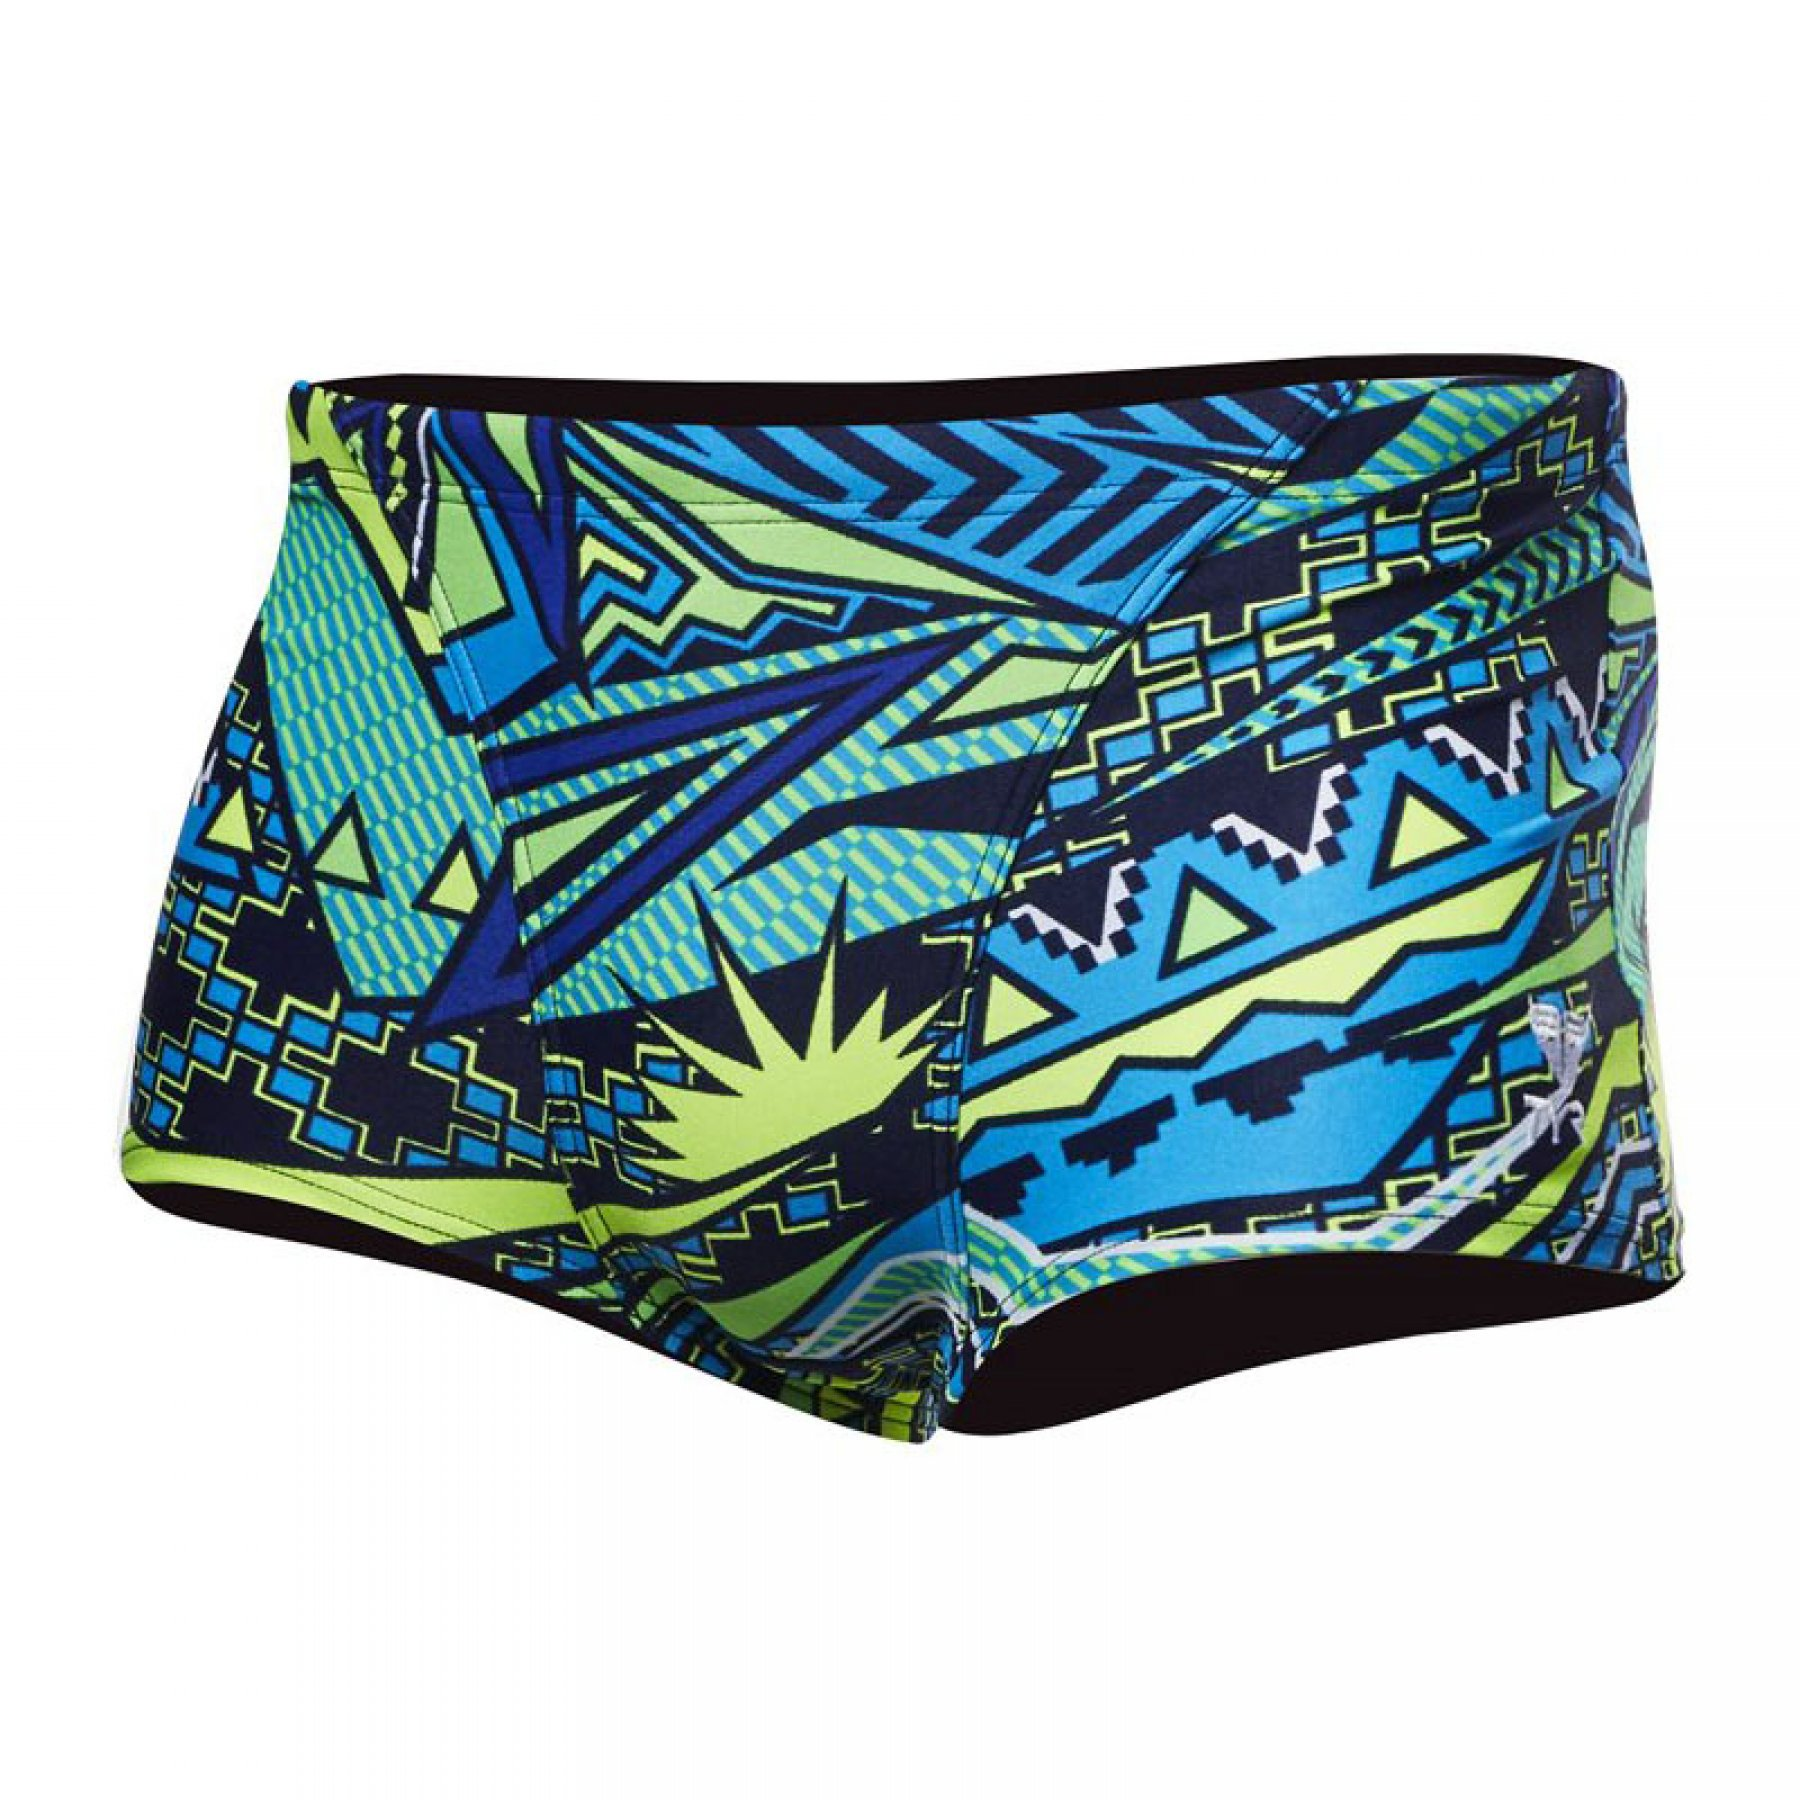 4846a3fee TYR Whaam Allover Trunk lightblue. Click Image for Gallery